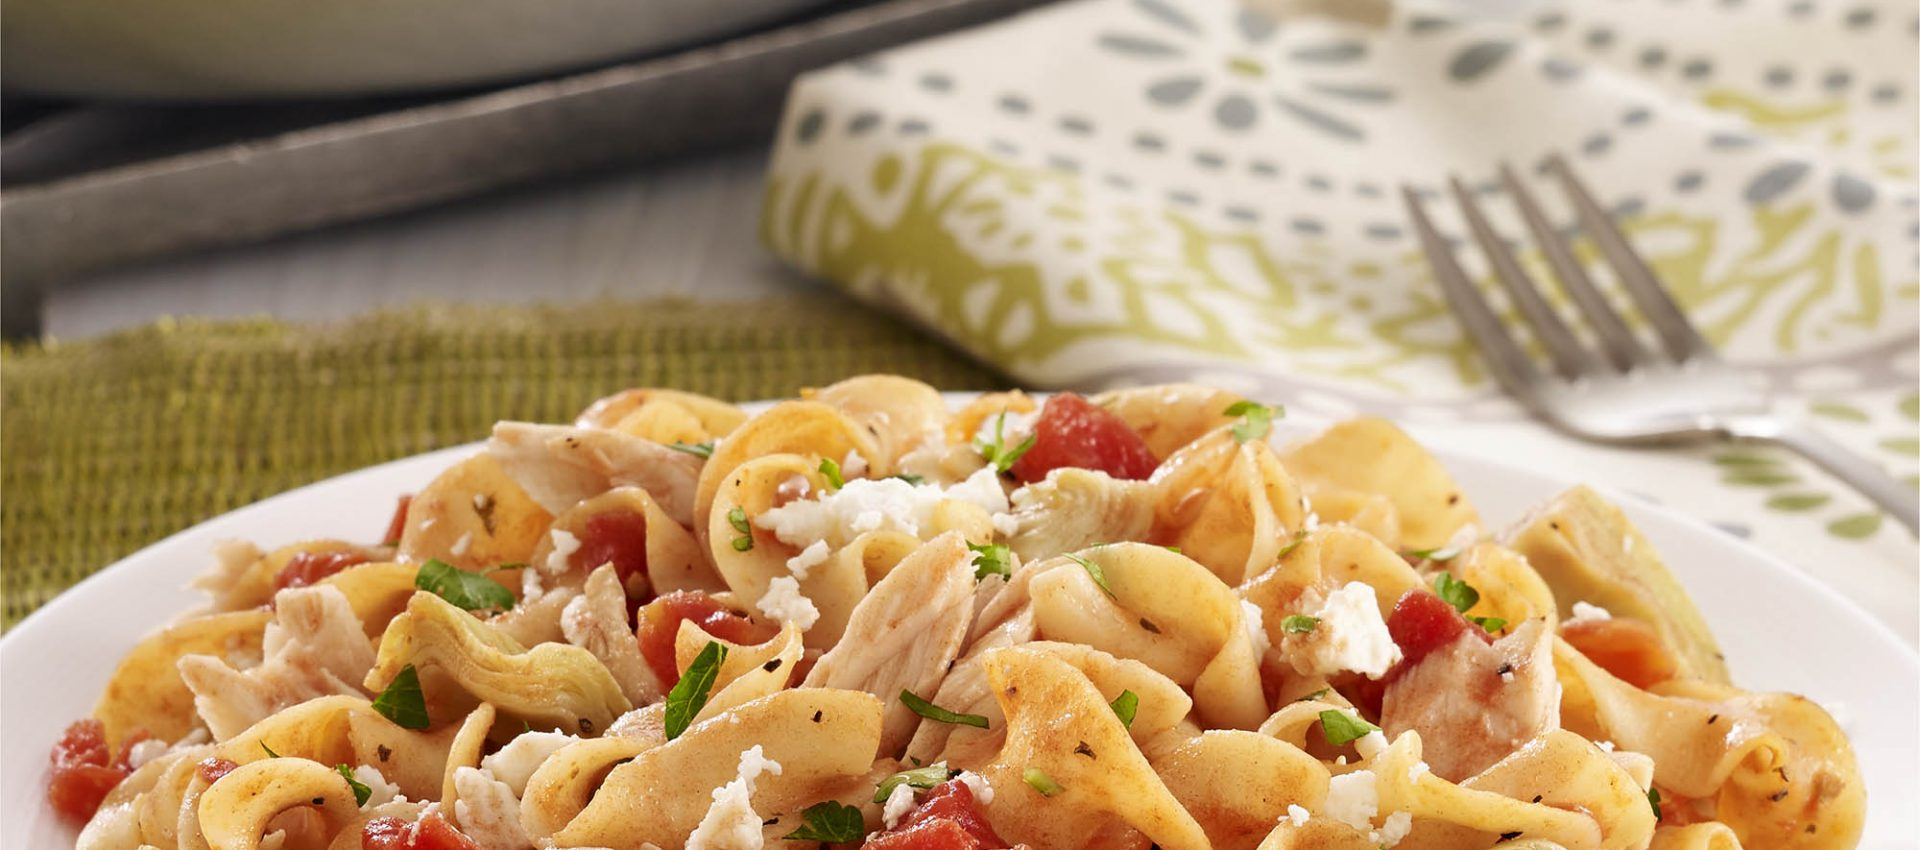 Egg noodles with tuna, artichokes, diced tomatoes, and feta cheese